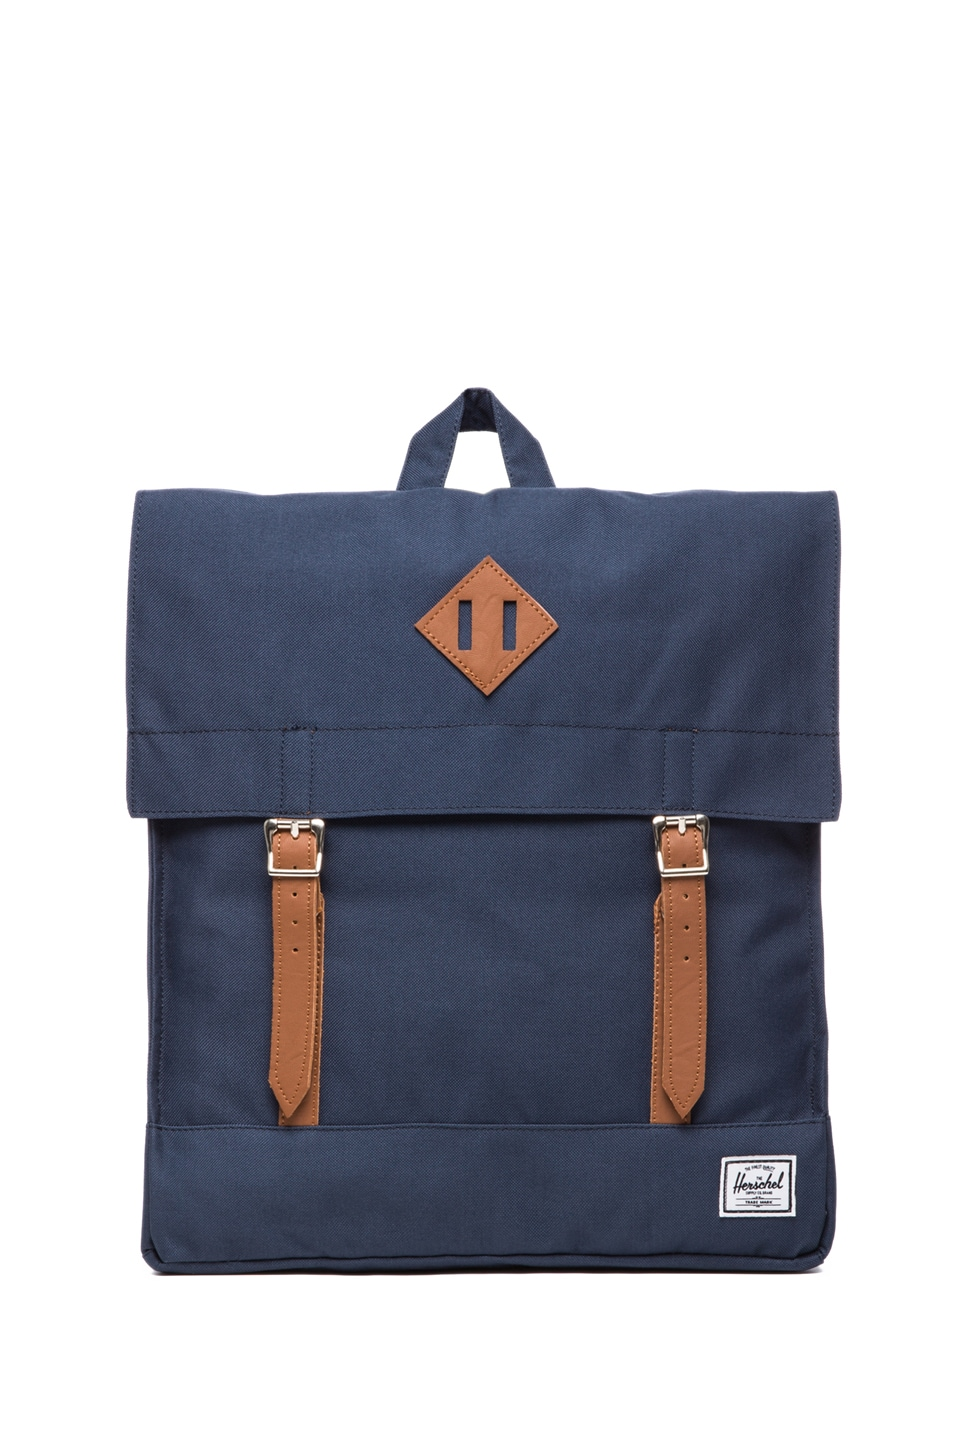 Herschel Supply Co. Sac à dos Survey en Marine